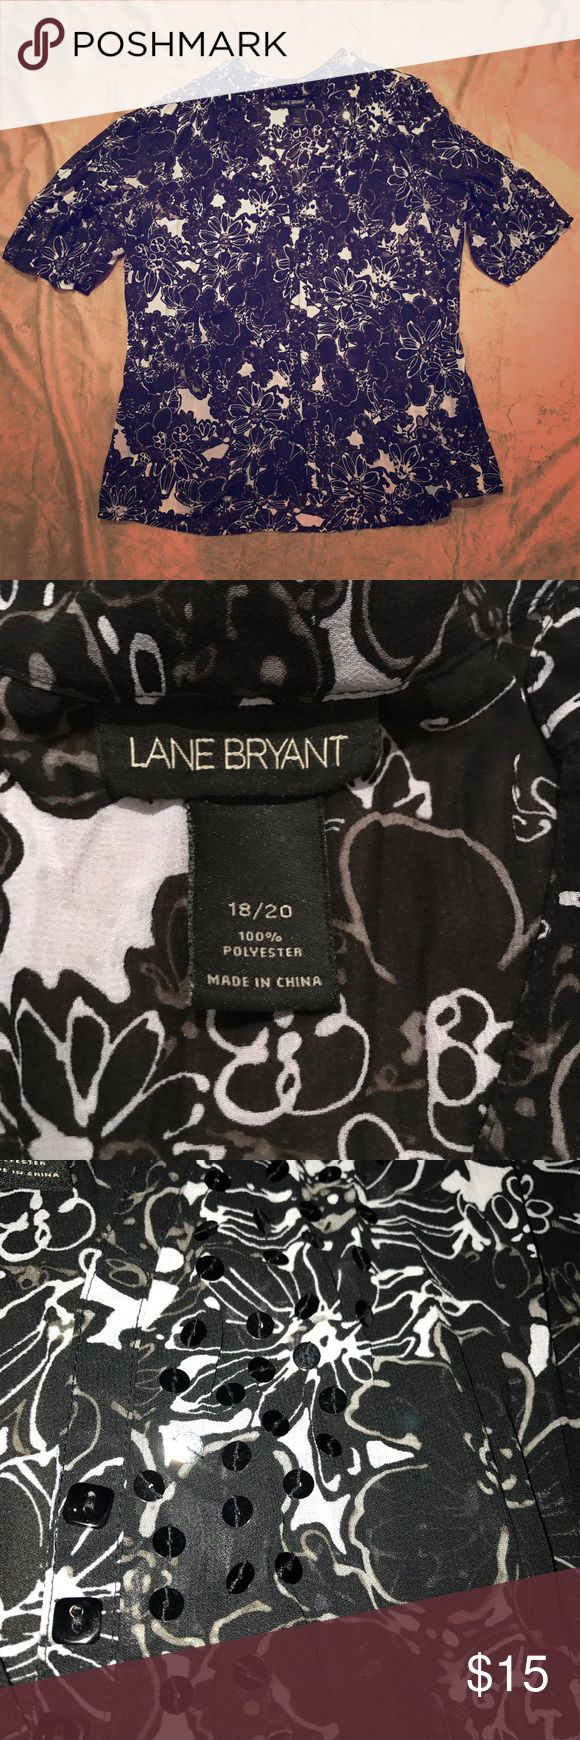 Lane Bryant Black White Top Blouse 18 / 20 This is another item that a friend gave me.  It's funny to me how I can't get the pictures quite right on this one! In the photos it looks like the shirt is solid, but it is actually pretty sheer. It would definitely require a tank top or camisole underneath.  I did my best to get a close-up picture of the sequins along the neckline.   Shirt is in great condition. No holes, stains, or defects. Please see pictures for further details and measurements…